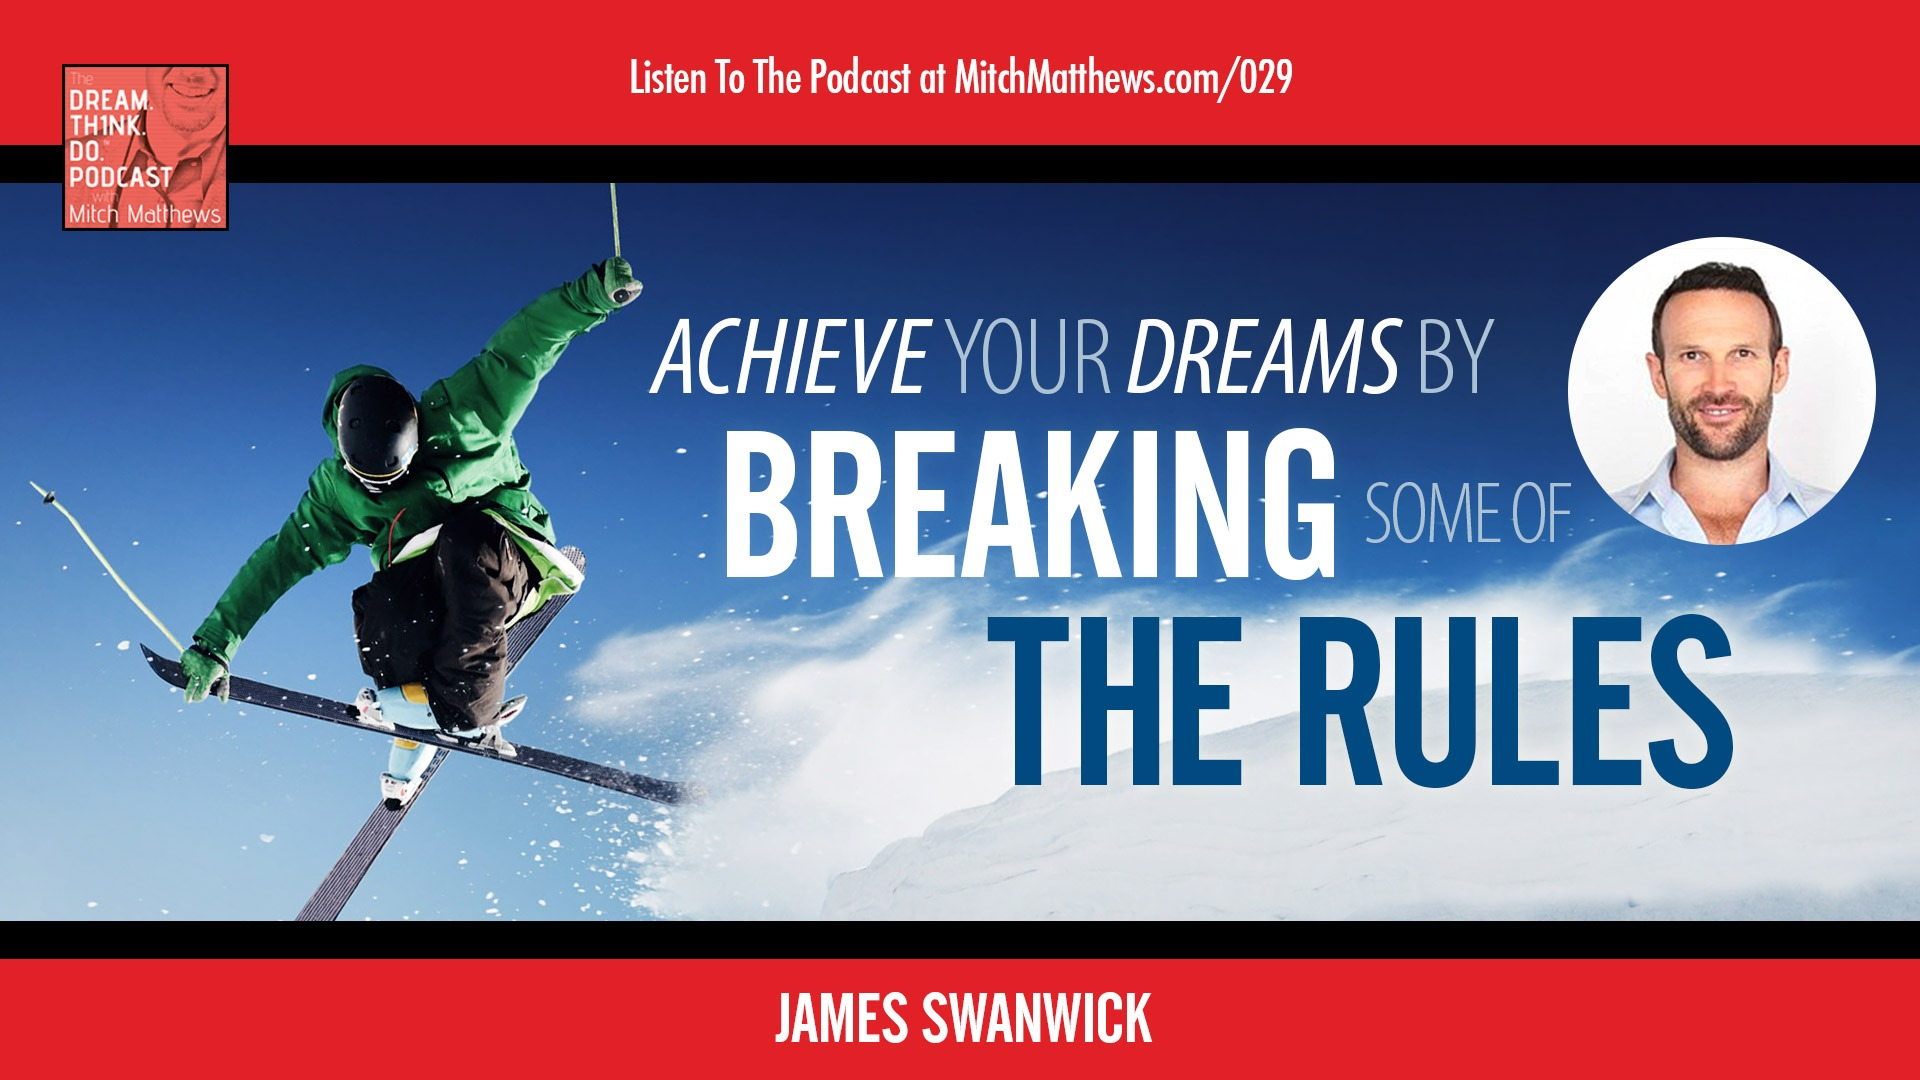 James Swanwick | Achieving Dreams and Breaking Rules